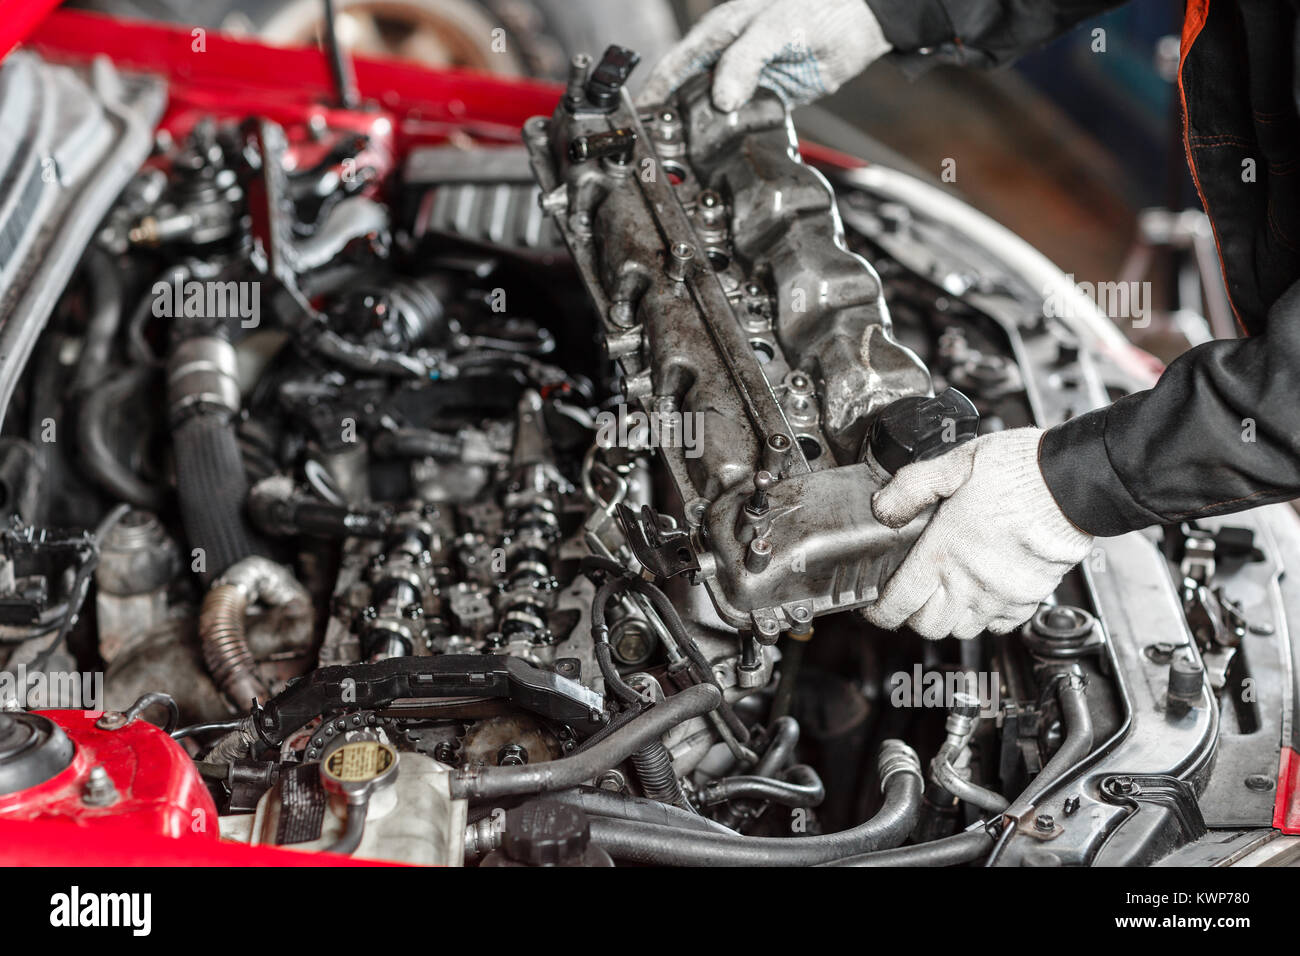 Repairing of modern diesel engine, workers hands and tool. Car mechanic looking at engine for analysis symptoms - Stock Image